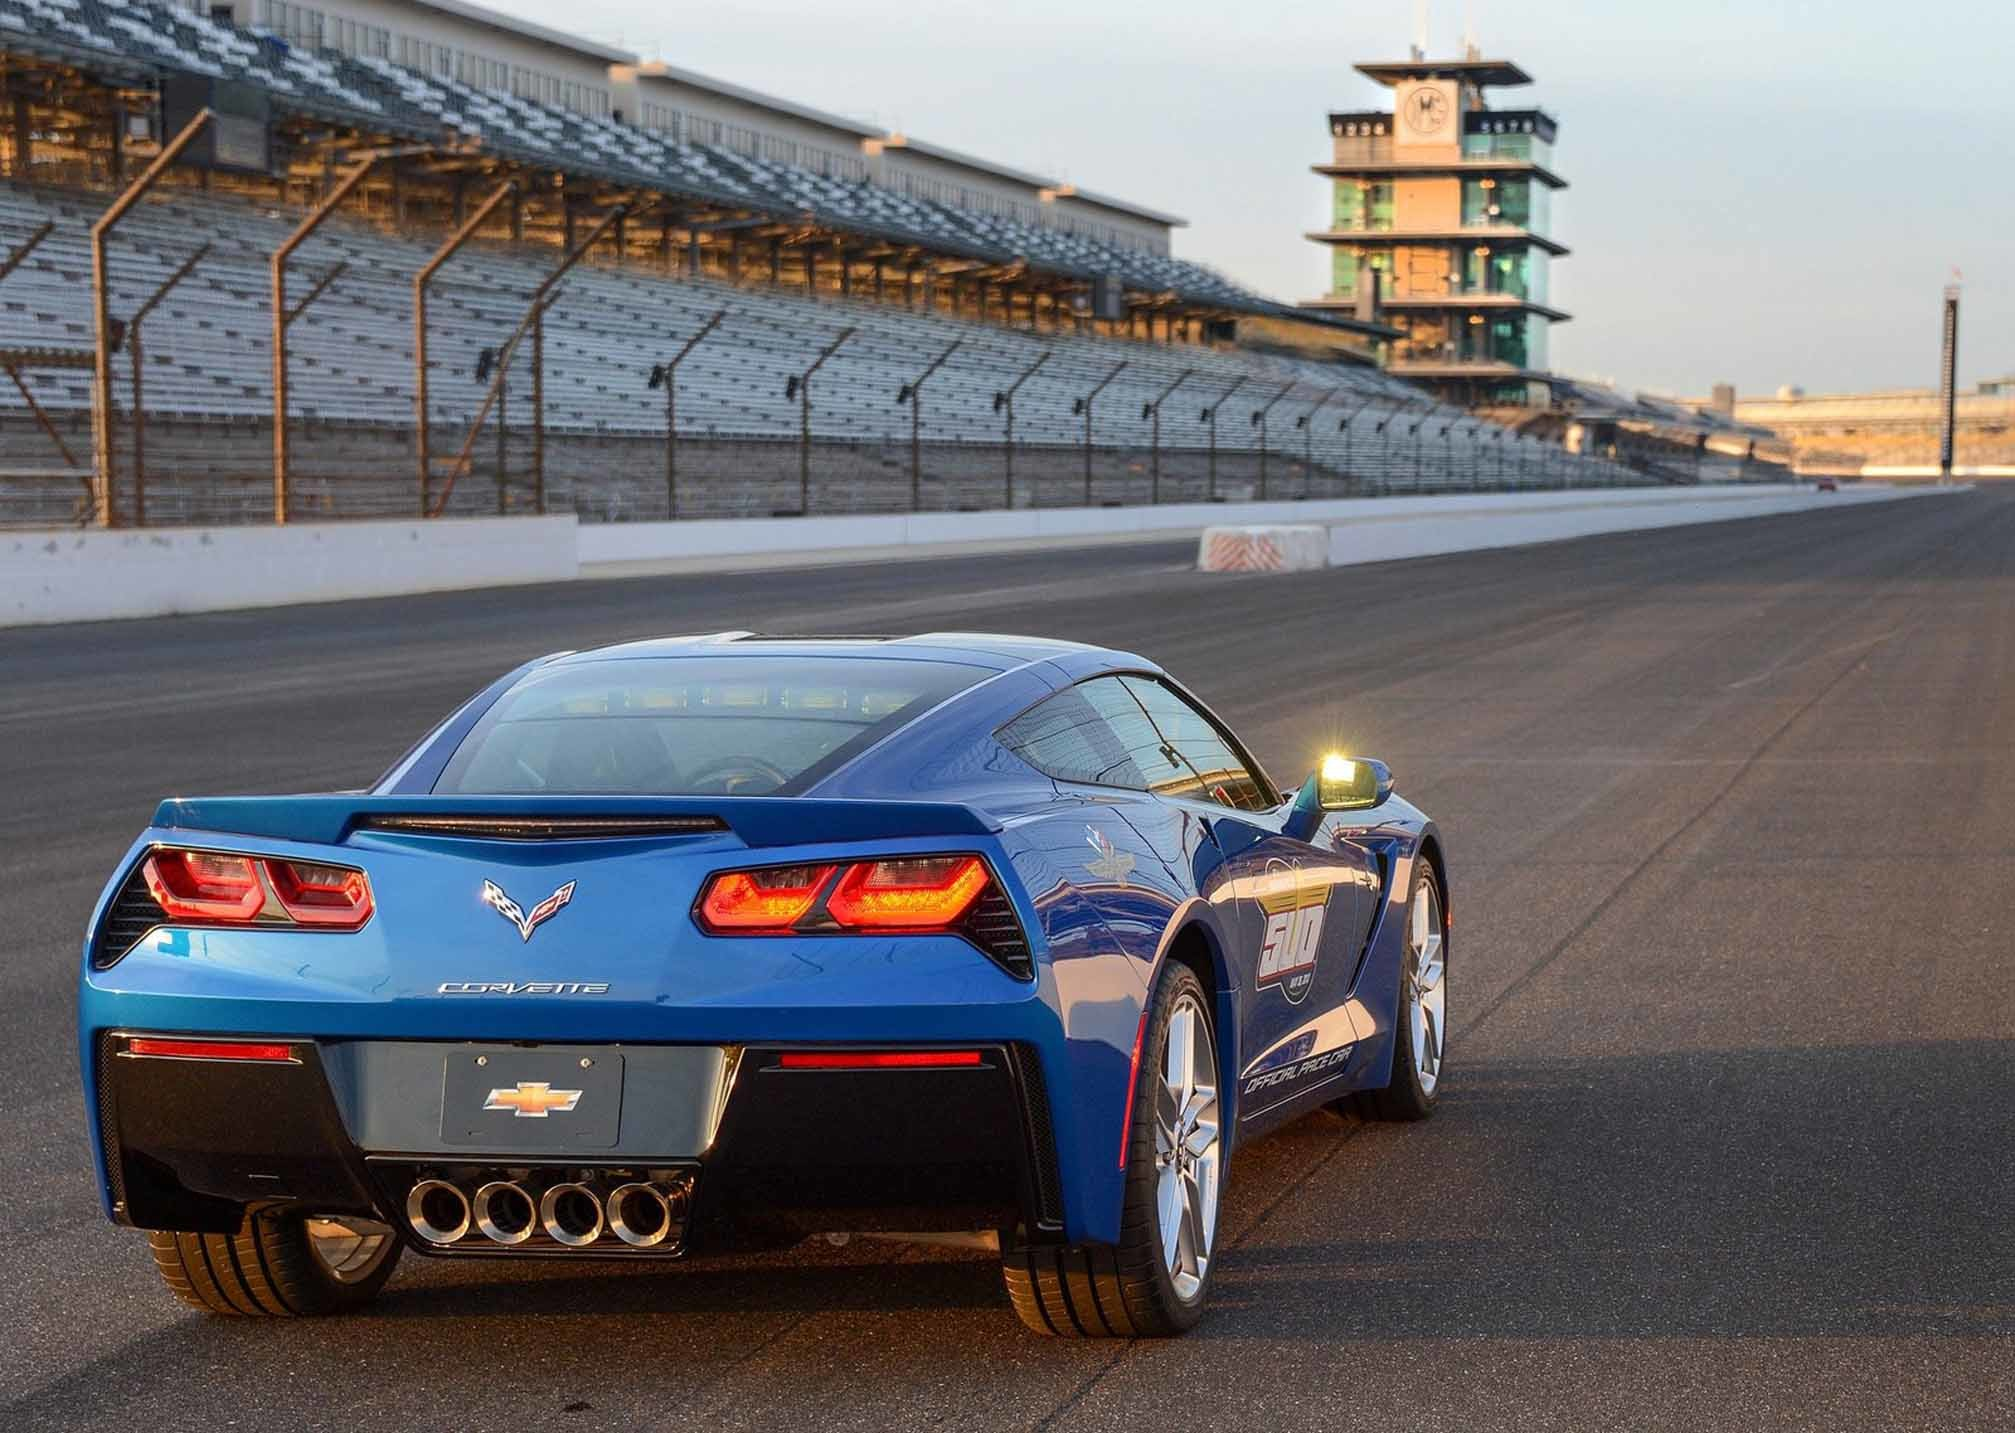 2015x1433 2014 Chevrolet Corvette Stingray Indy 500 Pace Car Wallpaper HD #2 .